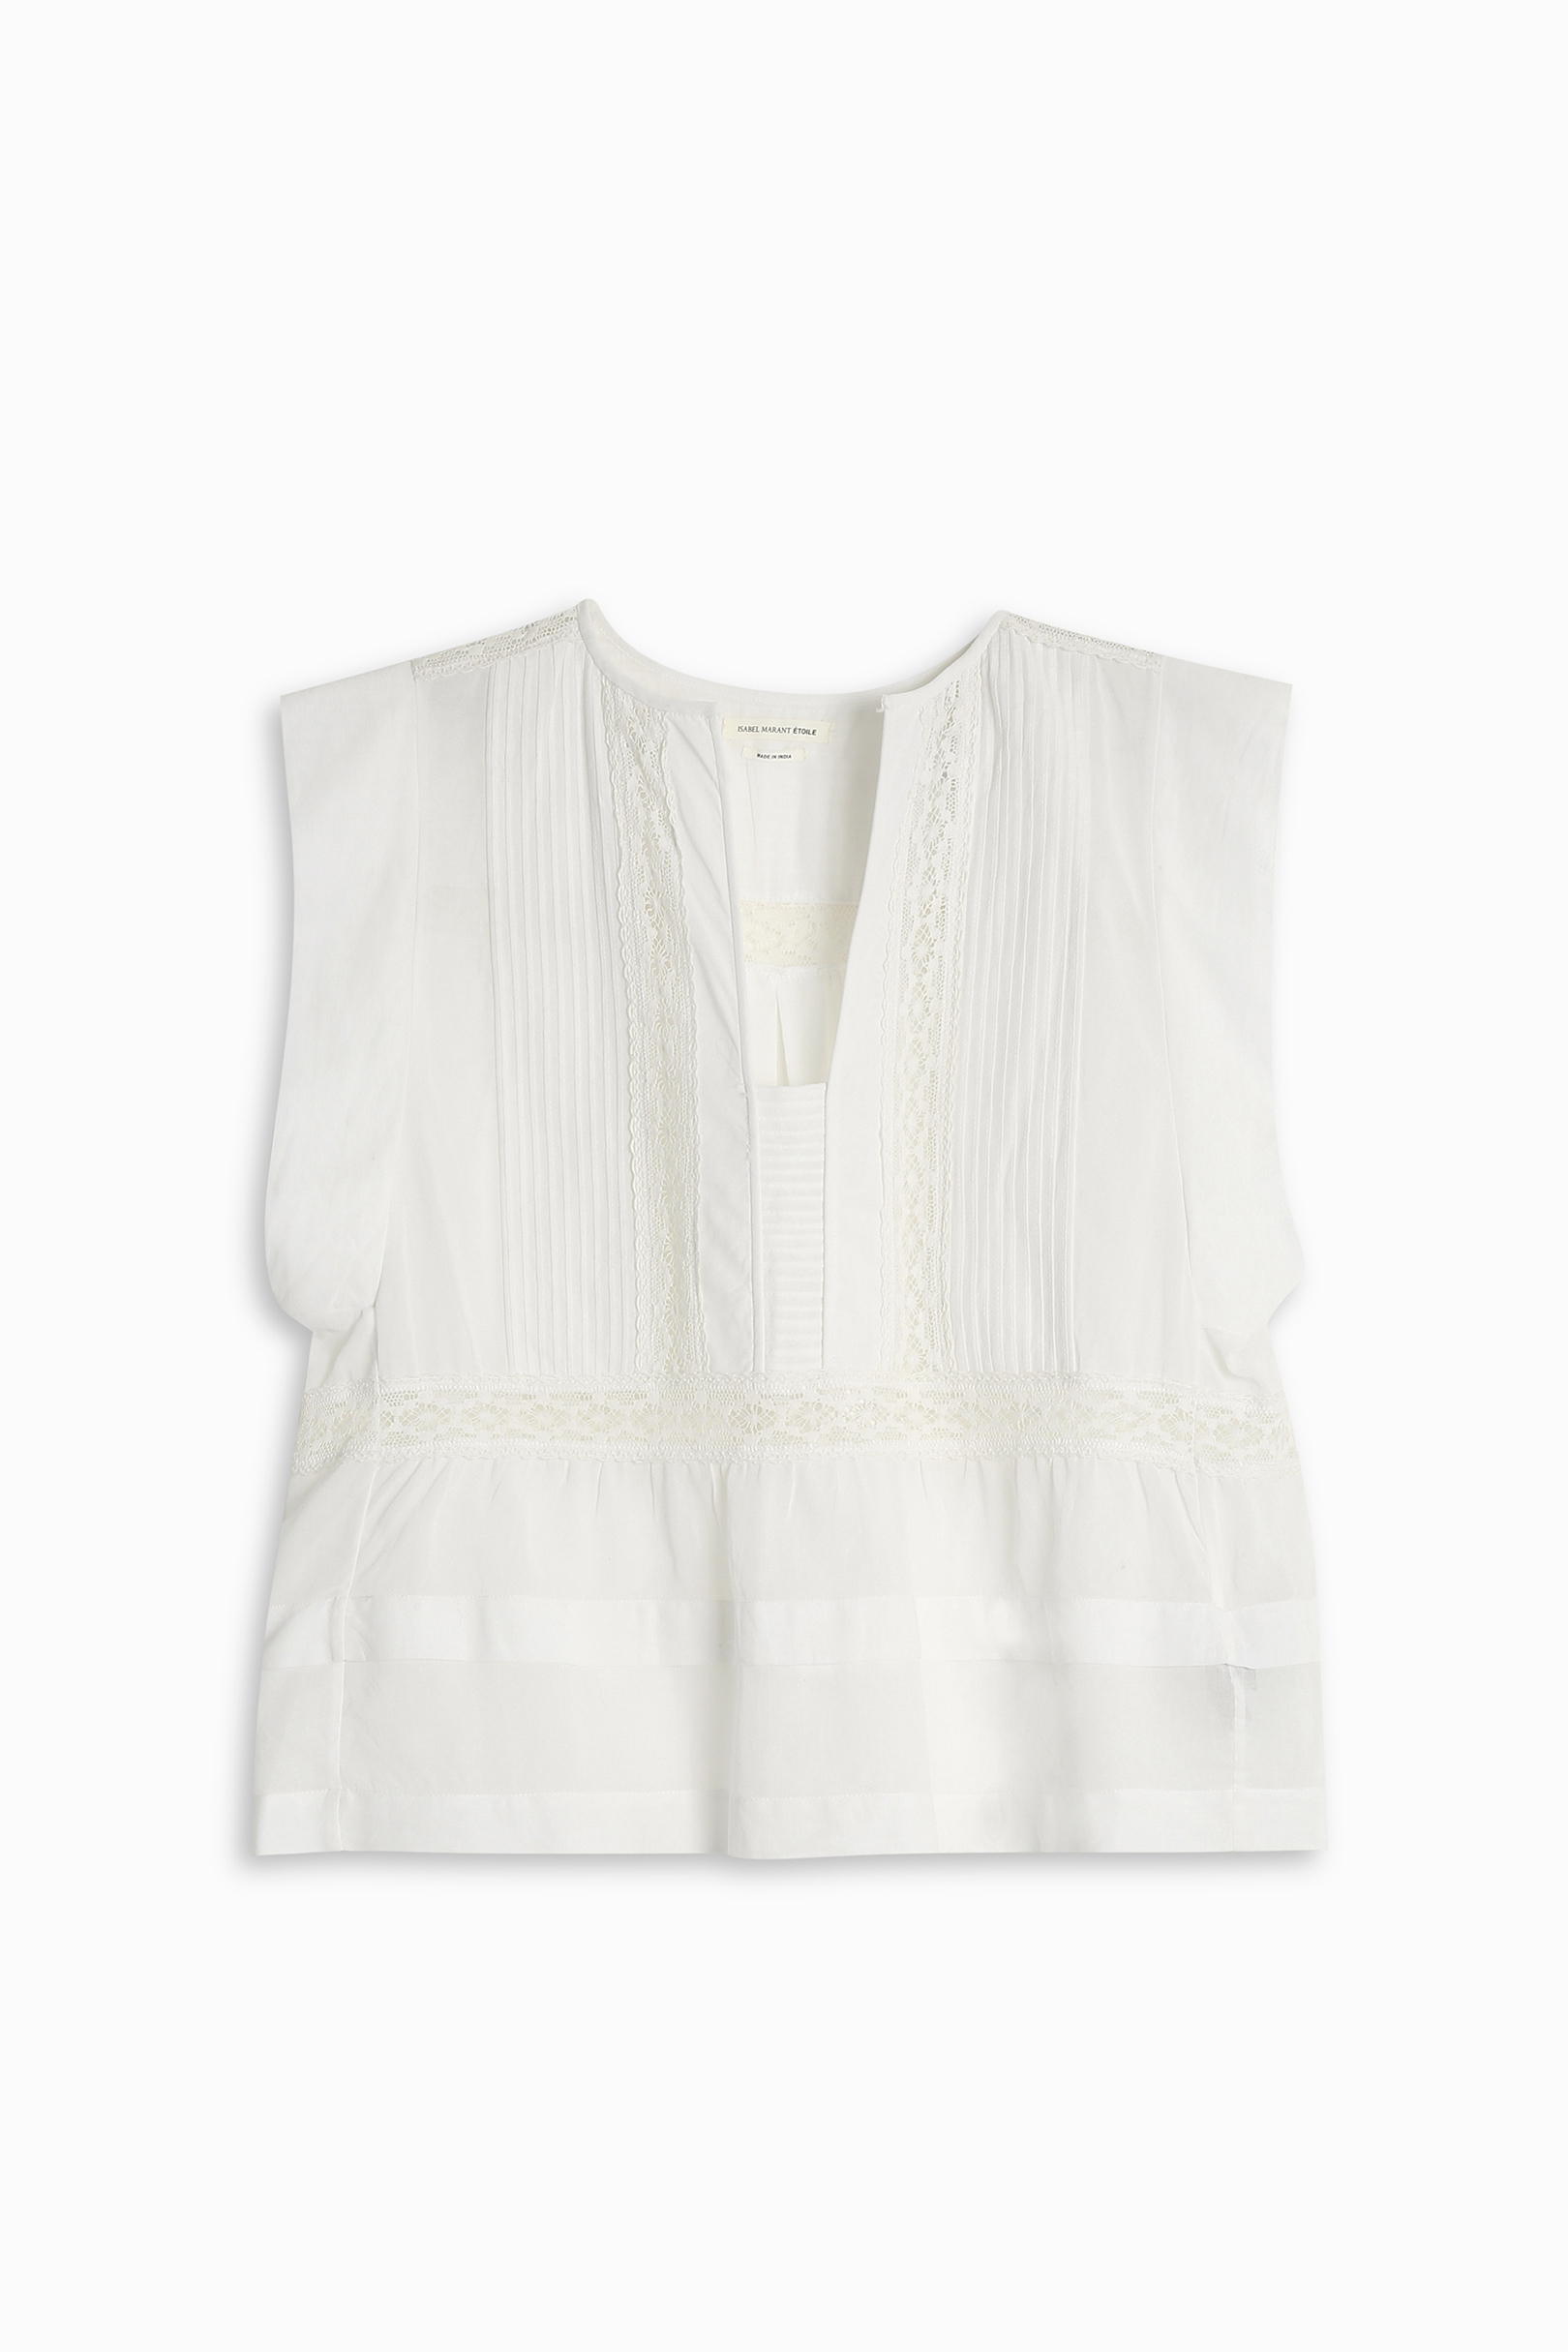 Free shipping and guaranteed authenticity on Isabel Marant Lace Blouse Size S Eu 38 White SweaterAuthentic ISABEL MARANT Lace Top, Size S, EU